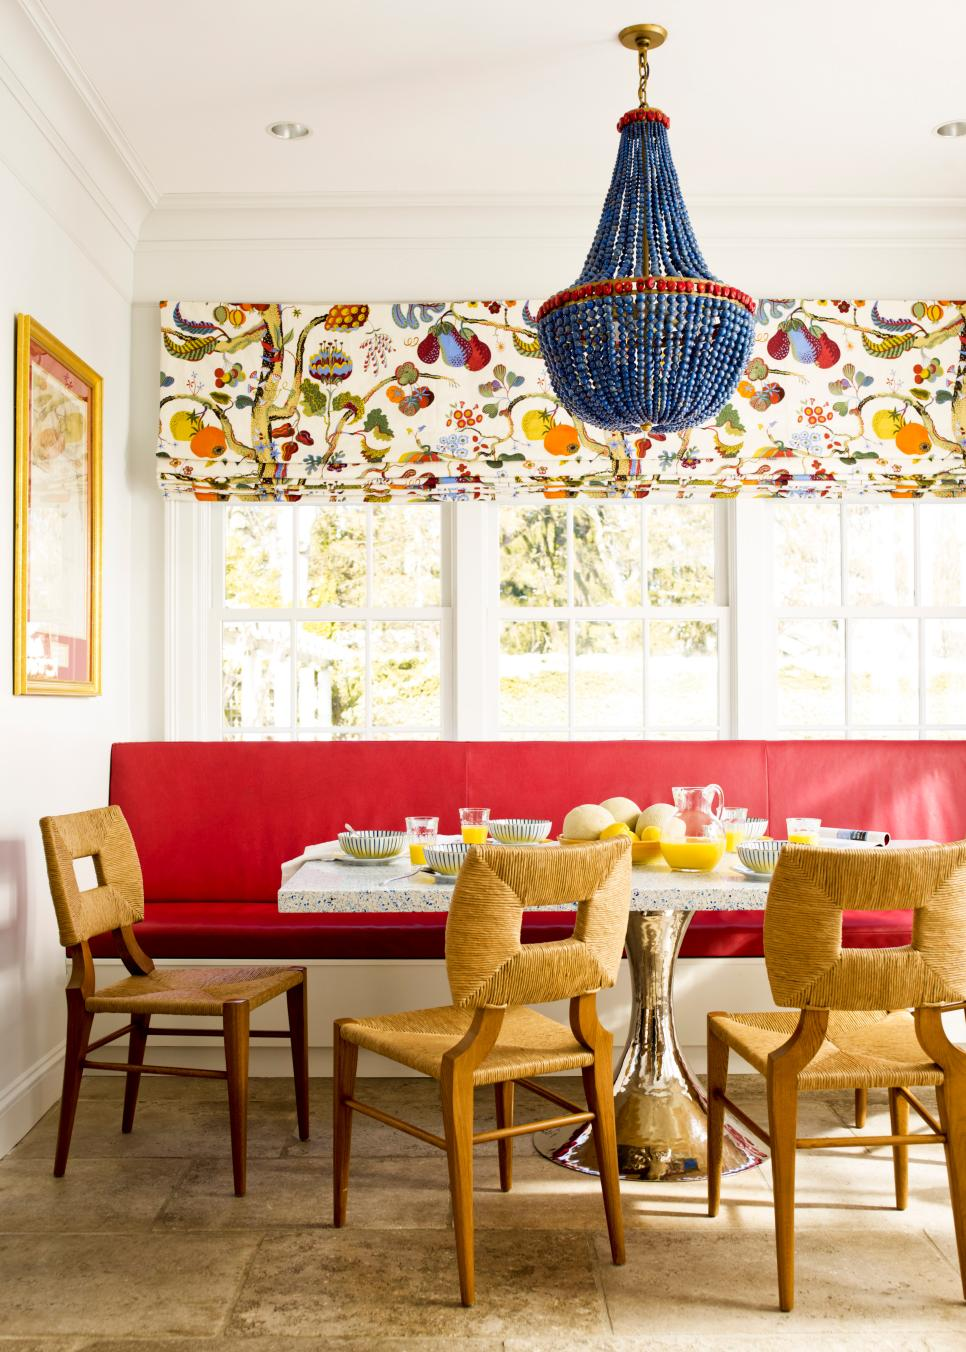 dp_kate-ridder-eclectic-red-dining-room-jpg-rend-hgtvcom-966-1352